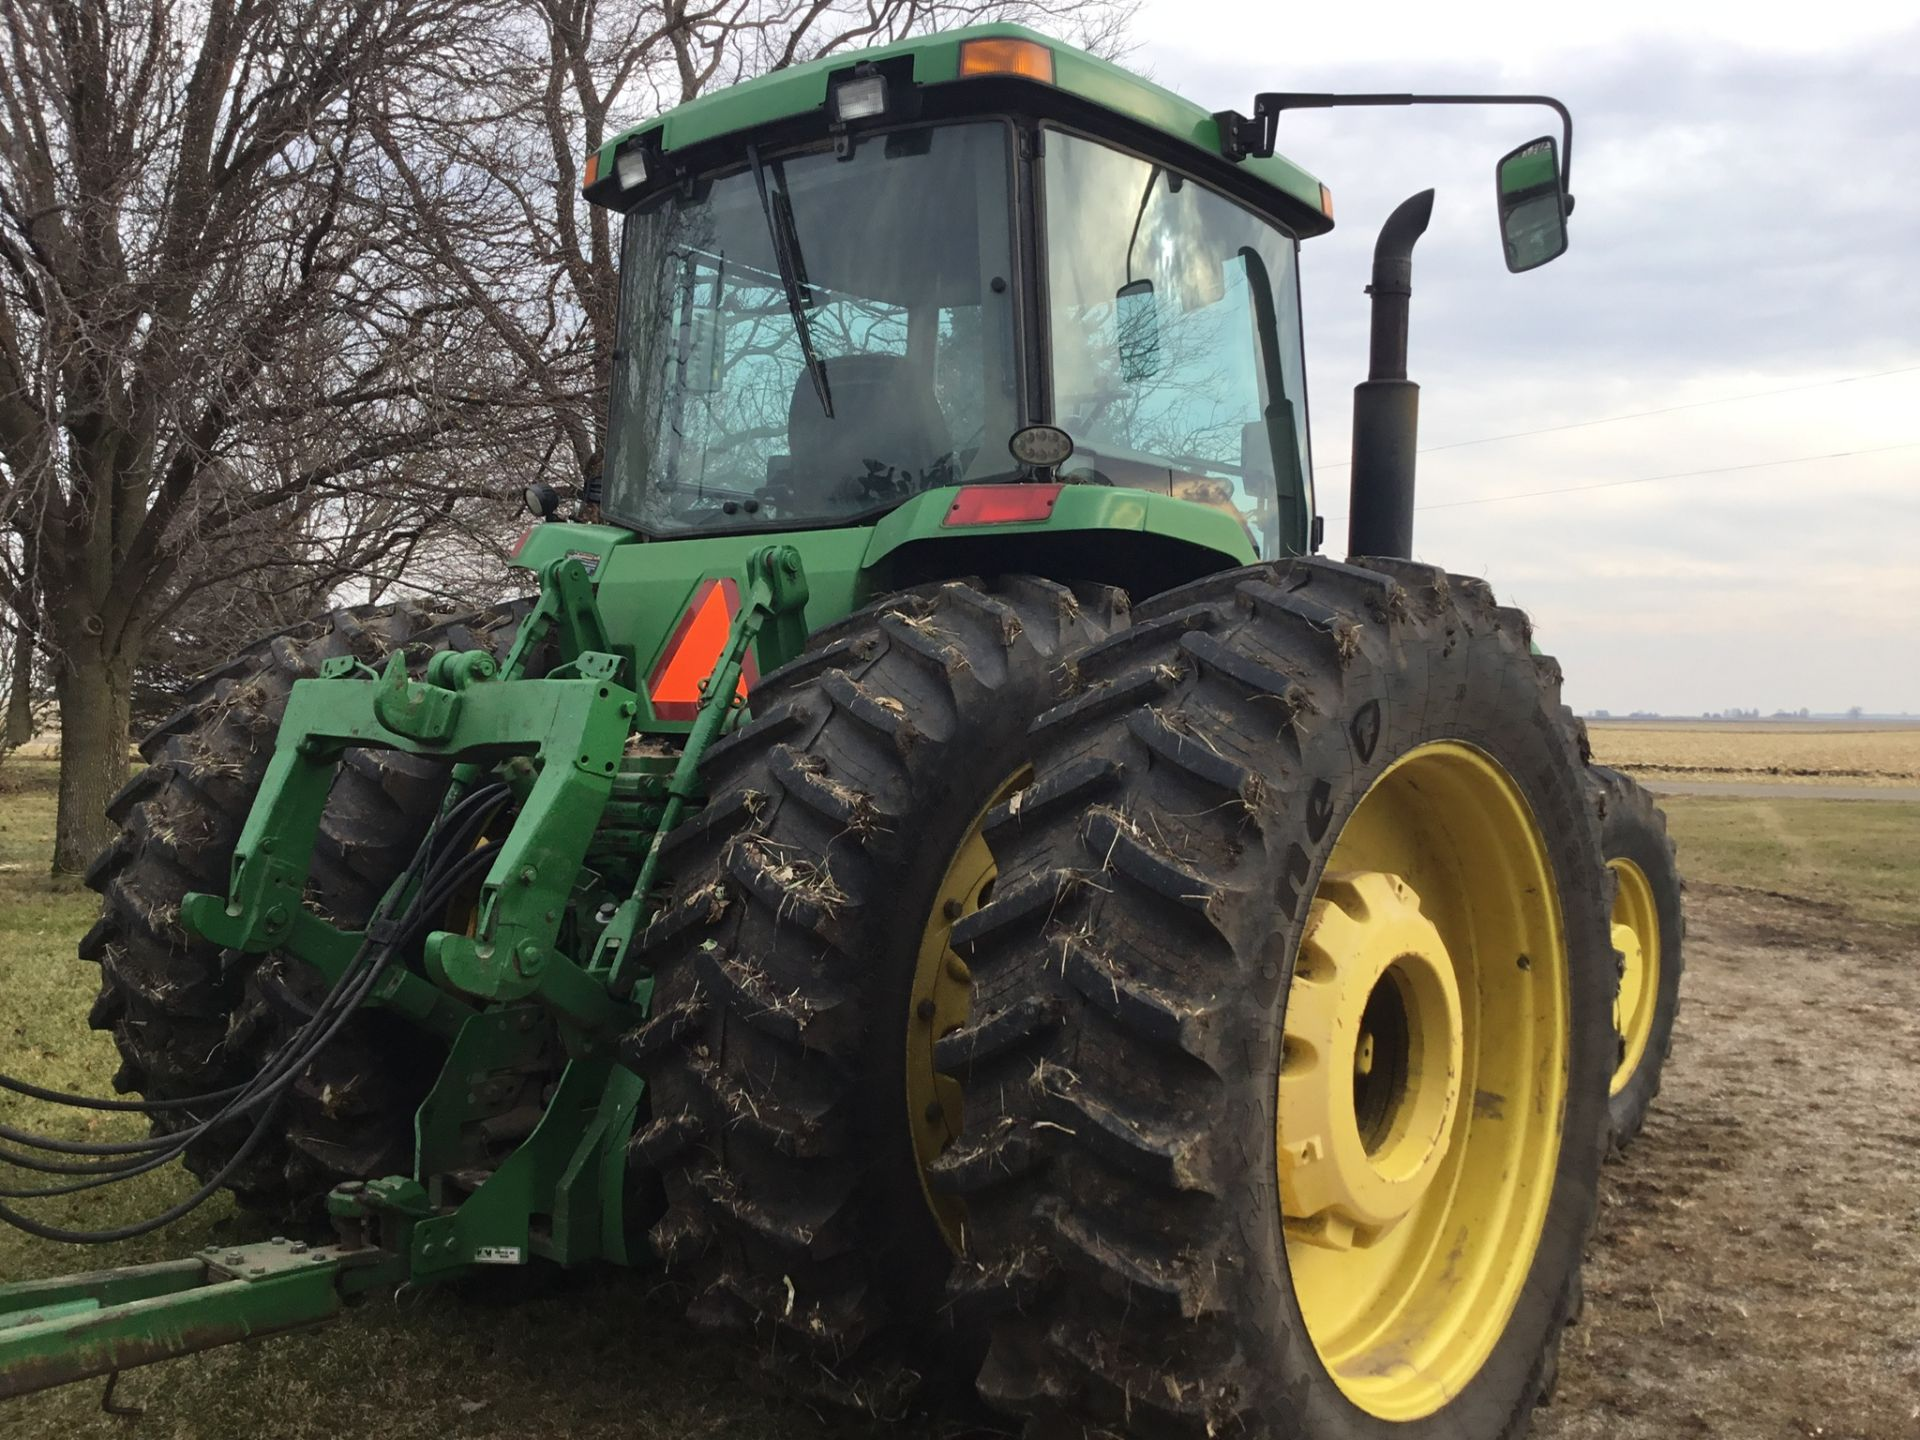 1997 John Deere 8300 MFWD, Power Shift, 3 Hydraulic Remotes, 3 Pt., Quick Hitch, PTO, Green Star - Image 16 of 25